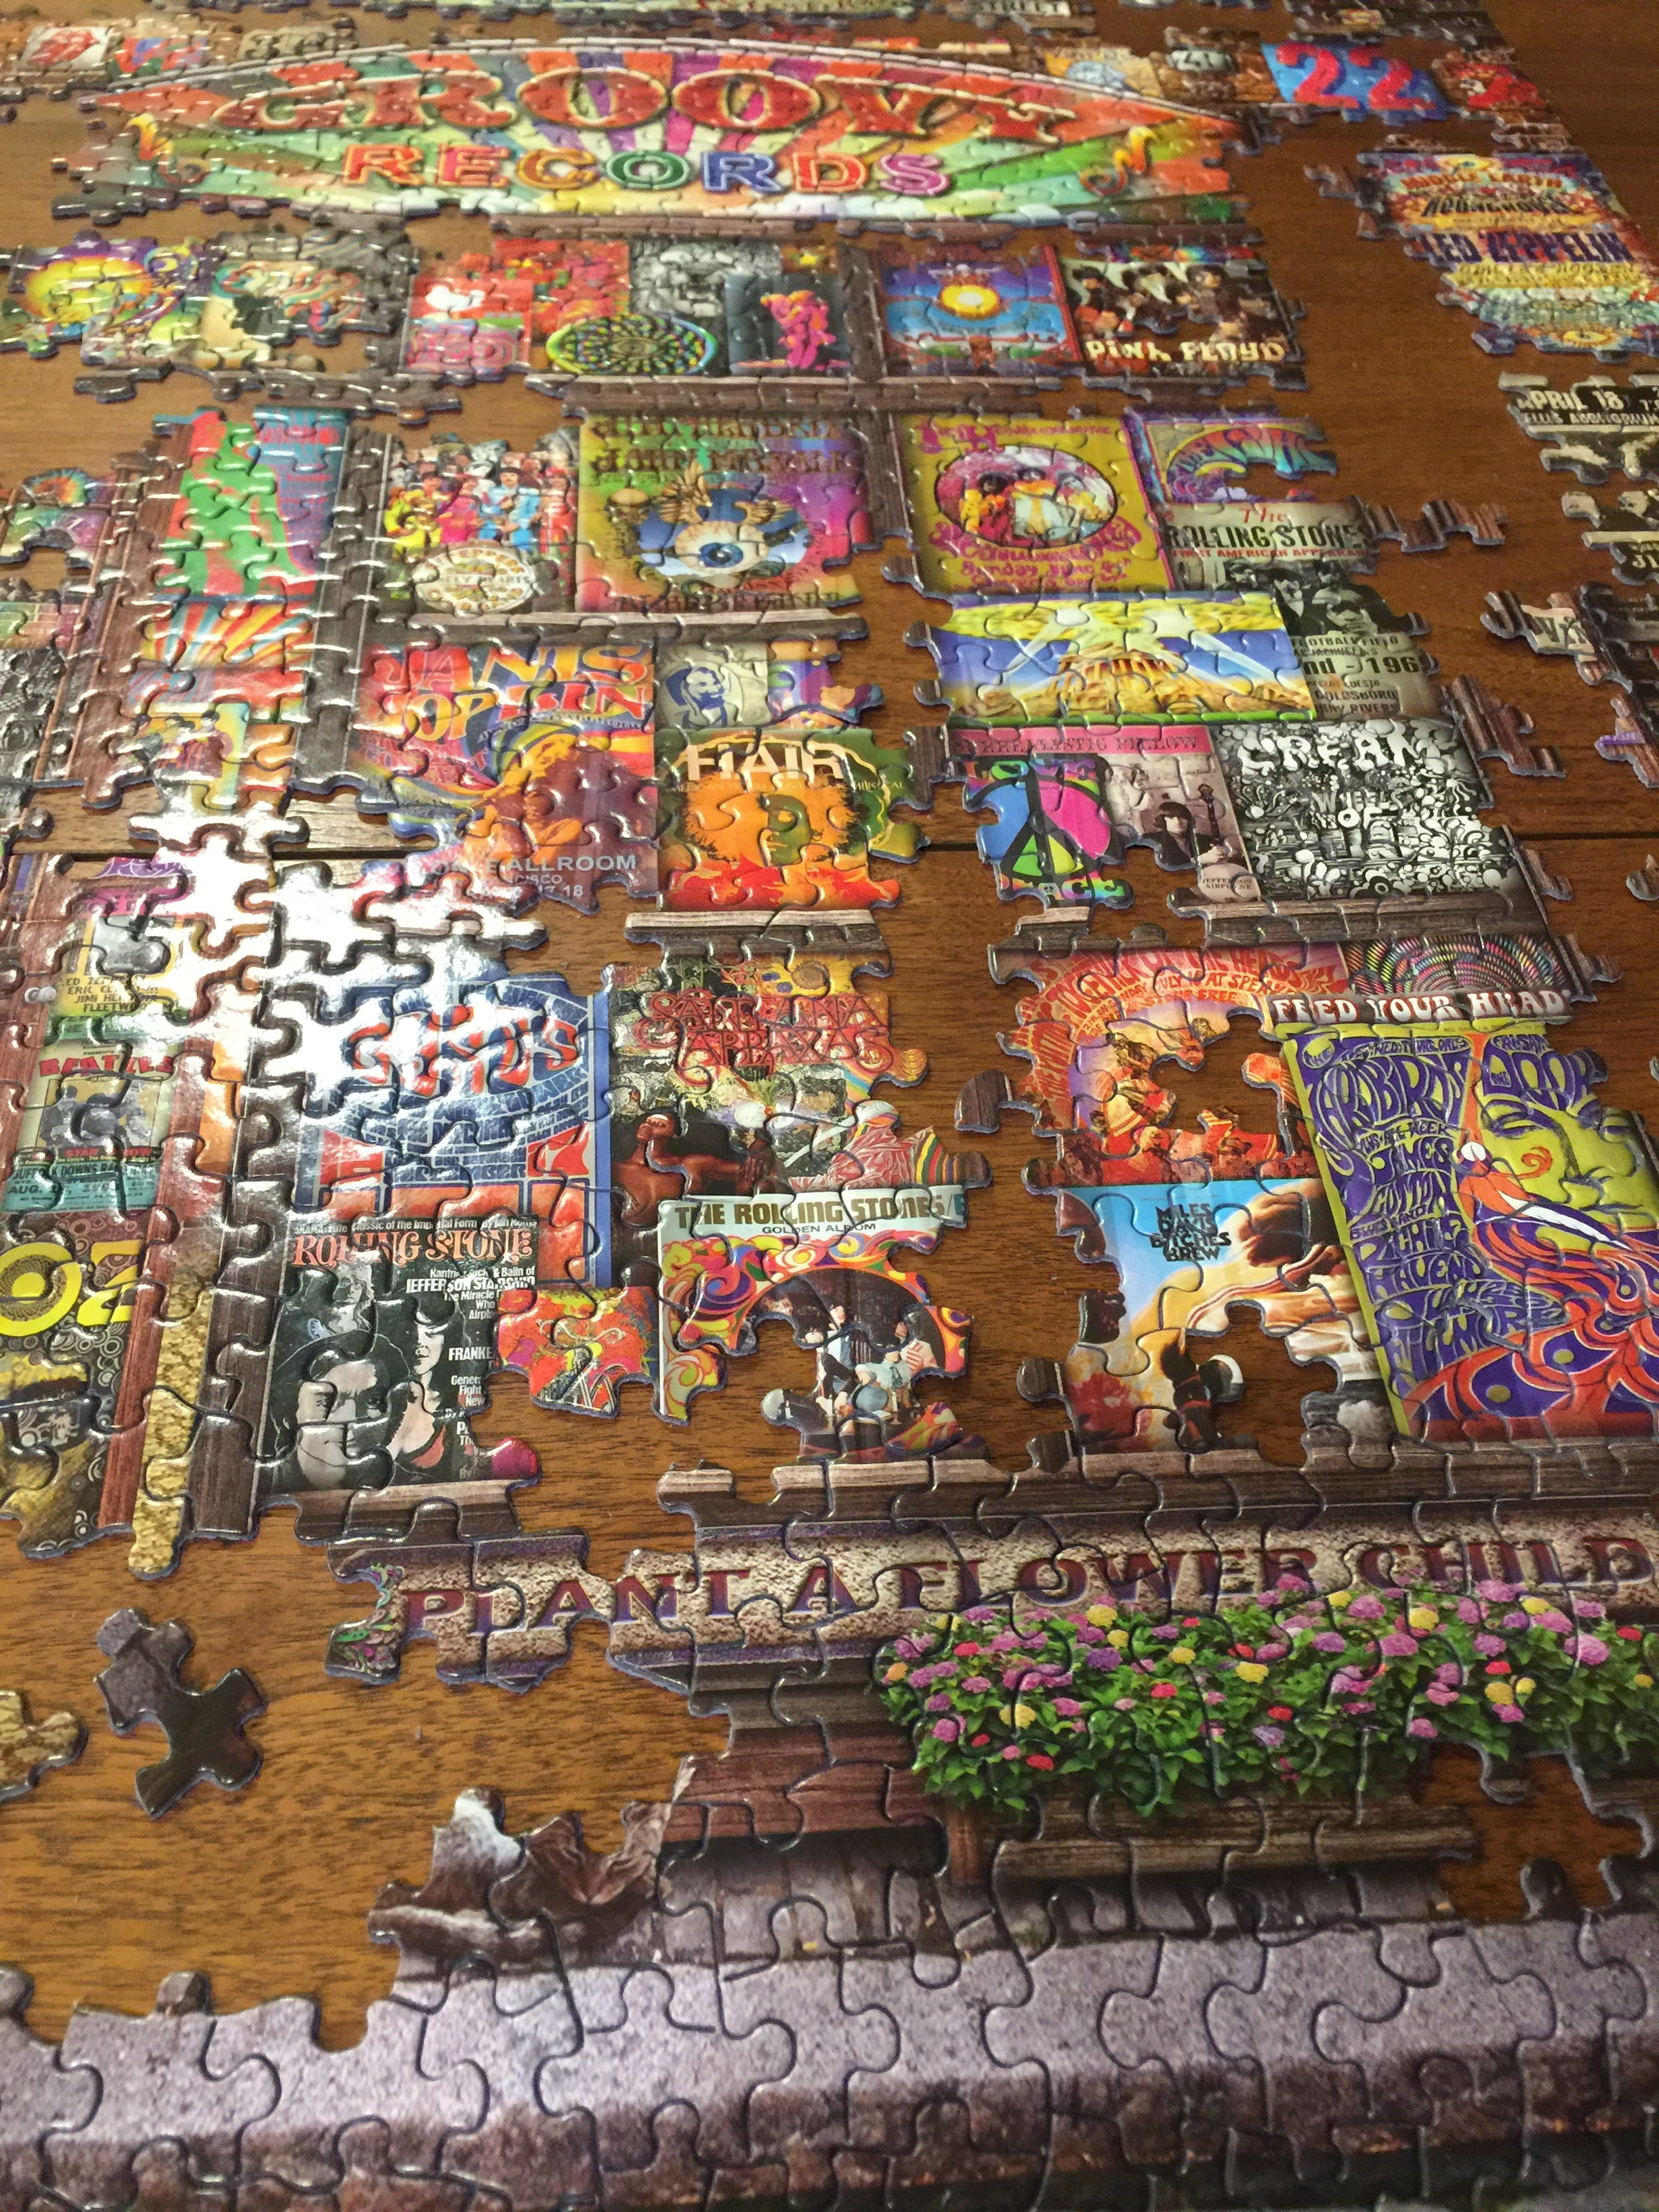 - Stay-at-home Things To Do: Where You Can Find Jigsaw Puzzles Amid